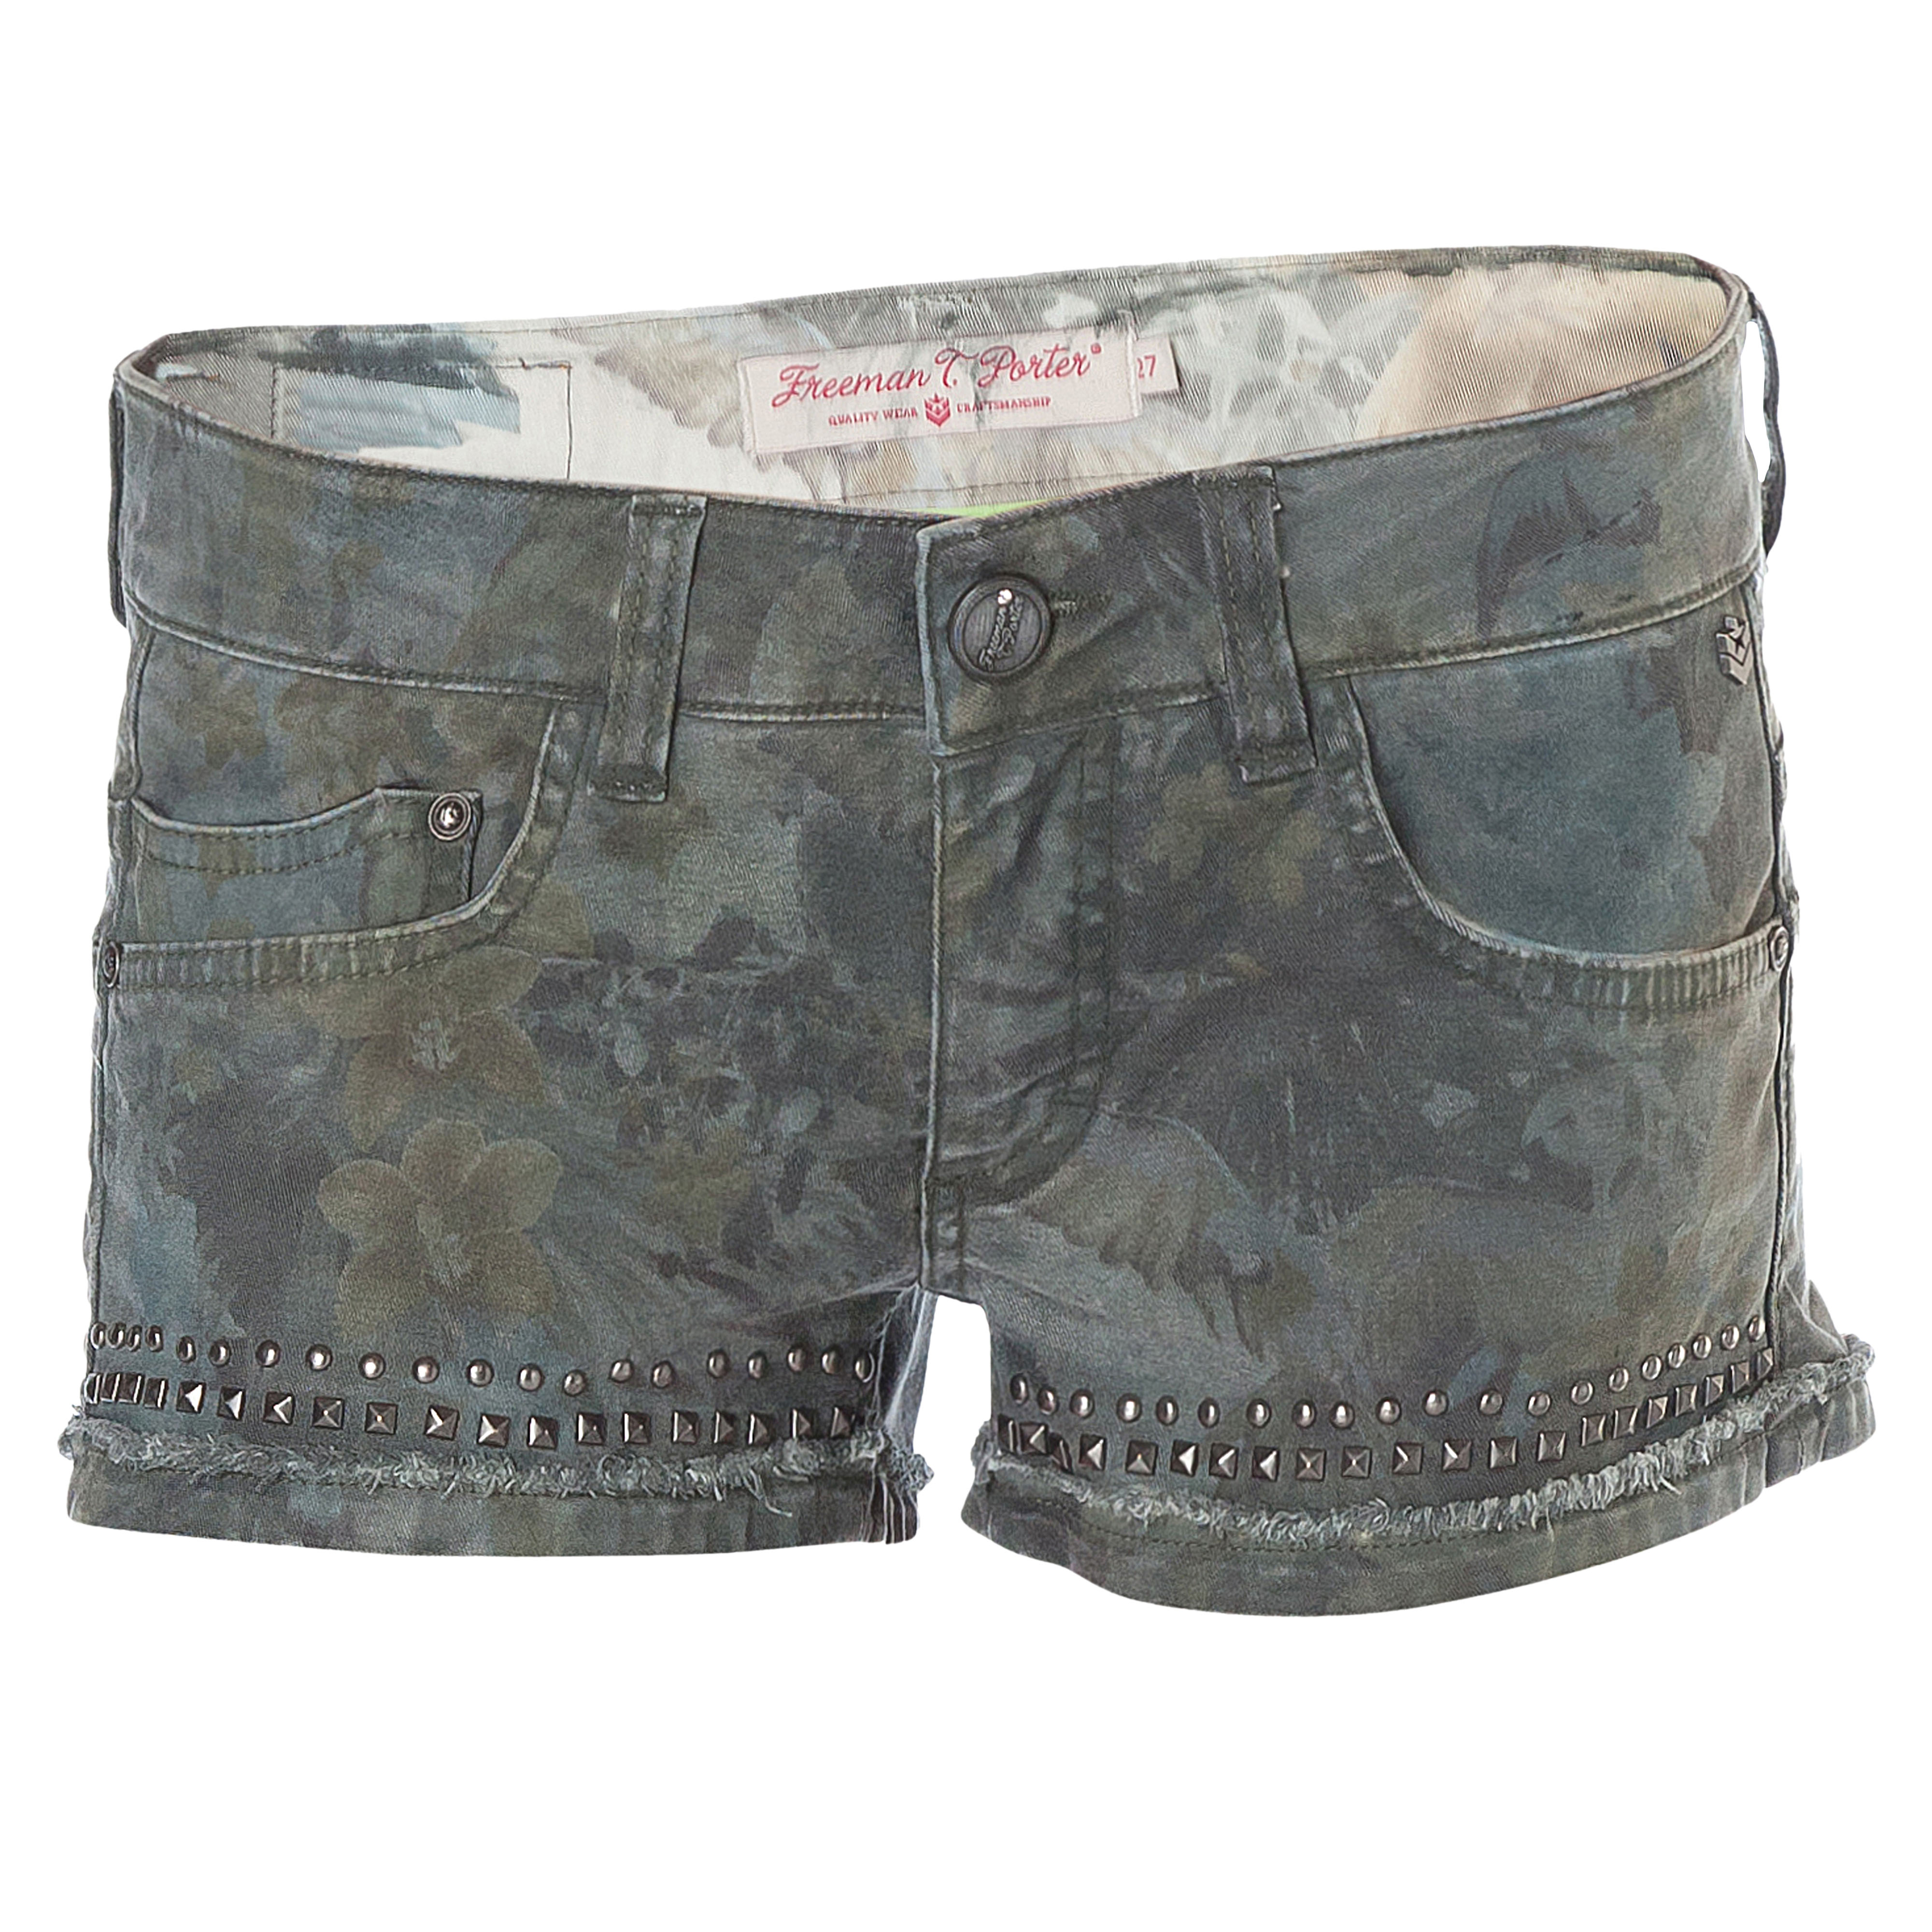 Hotpants im neuen Love, Peace and Festivals-Style von Freeman T. Porter